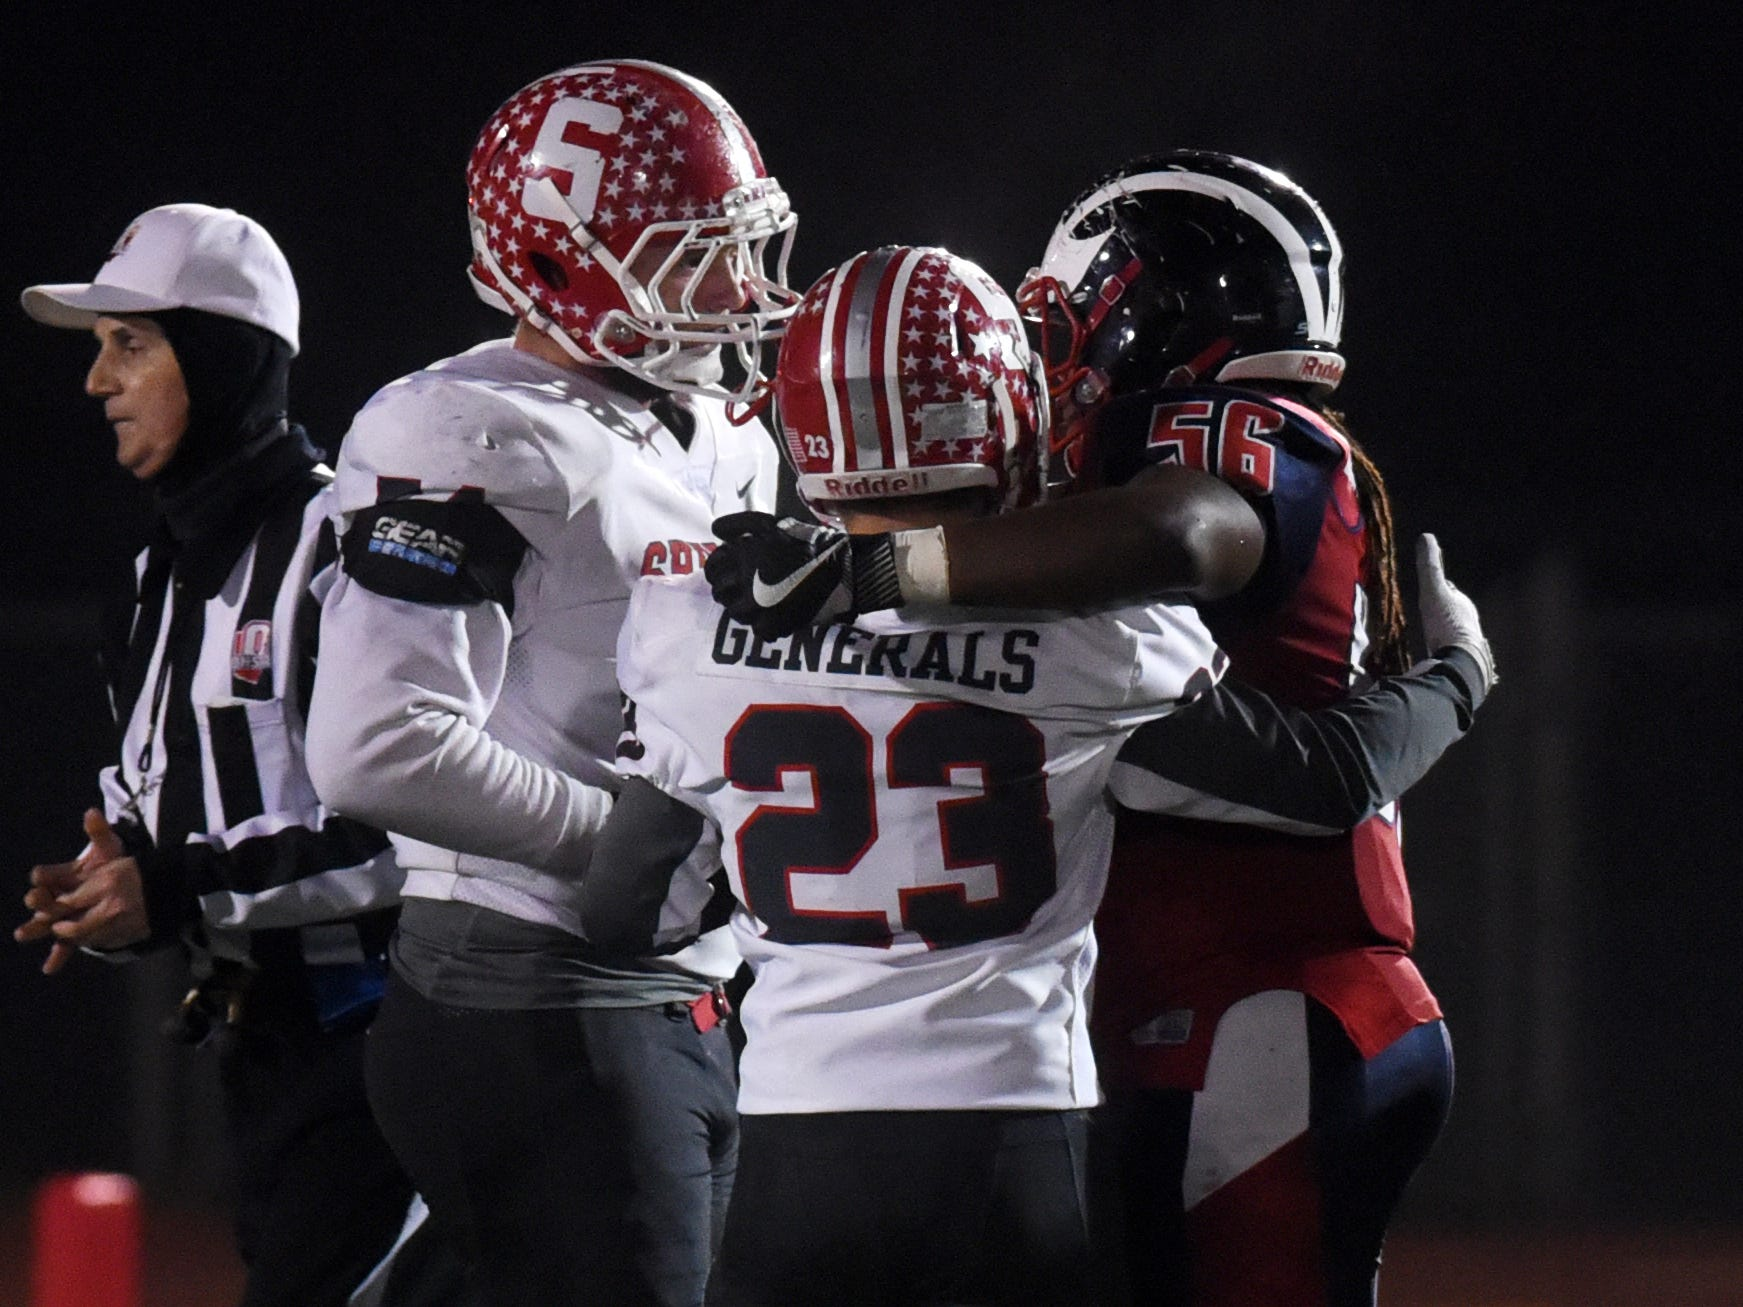 Sheridan fell, 20-14, to Columbus Eastmoor Academy in a Division III, Region 11 final on Friday night in Lancaster.